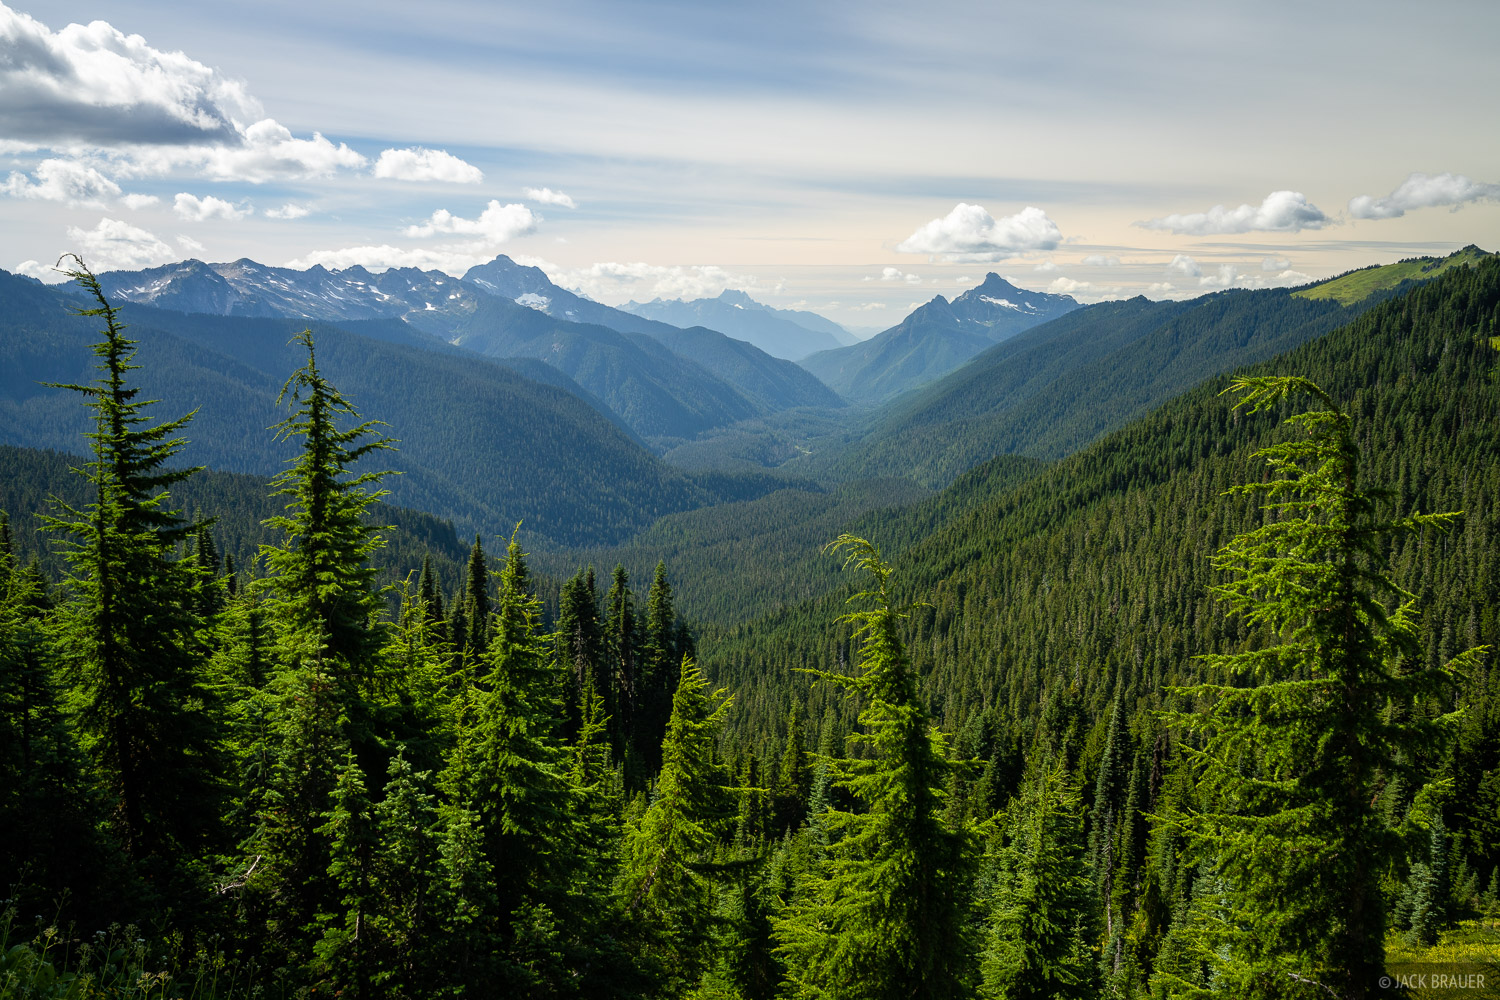 A view down the White Chuck River valley, with Mount Pugh (left) and White Chuck Mountain (right).